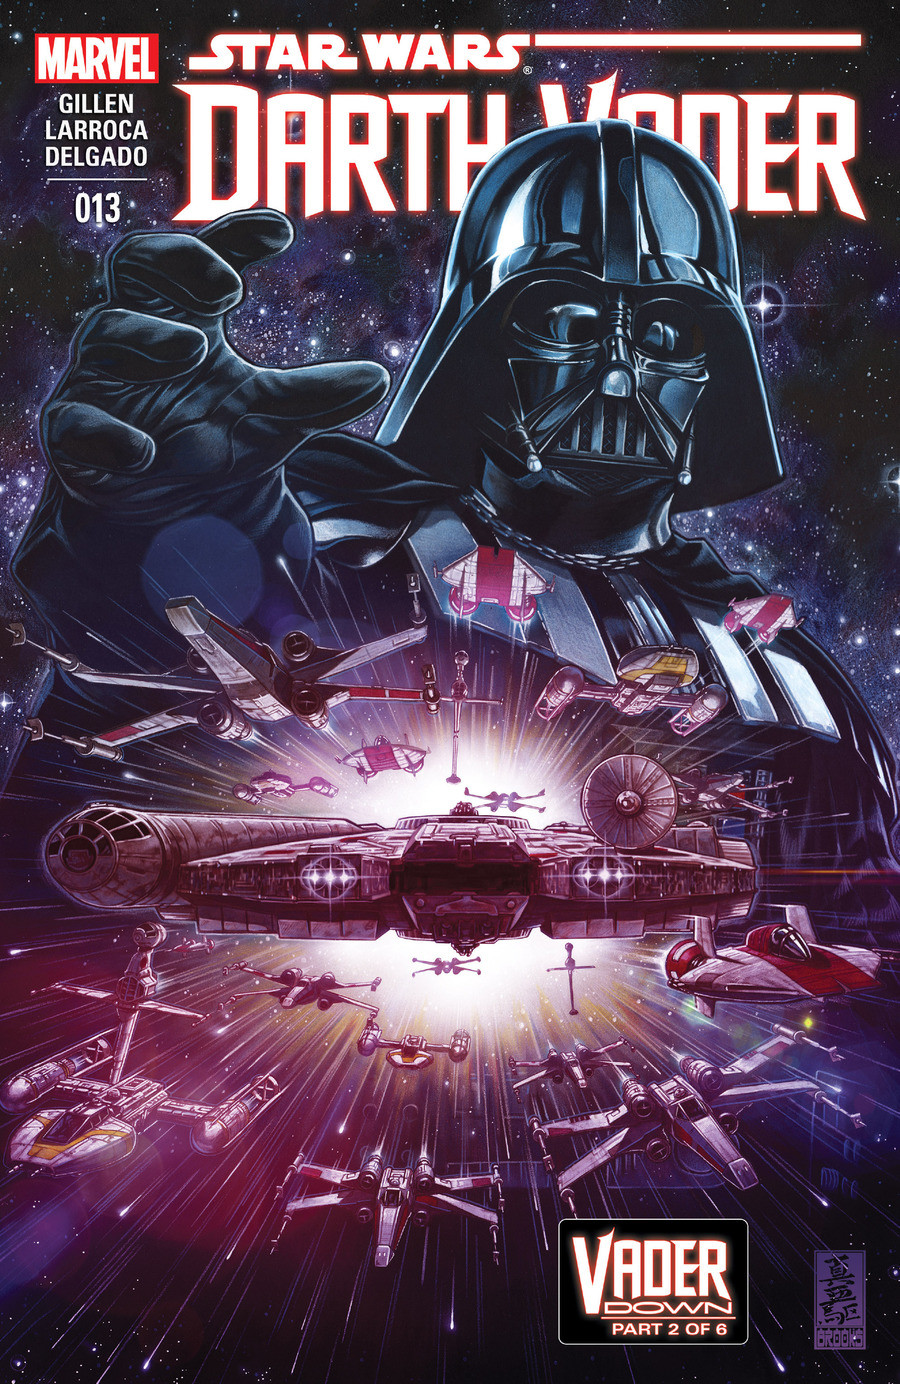 Star Wars Vader Down part 2. Vader Down part 2, and issue 13 of the Darth Vader comic series Click the lists mention history and these three links for every pre